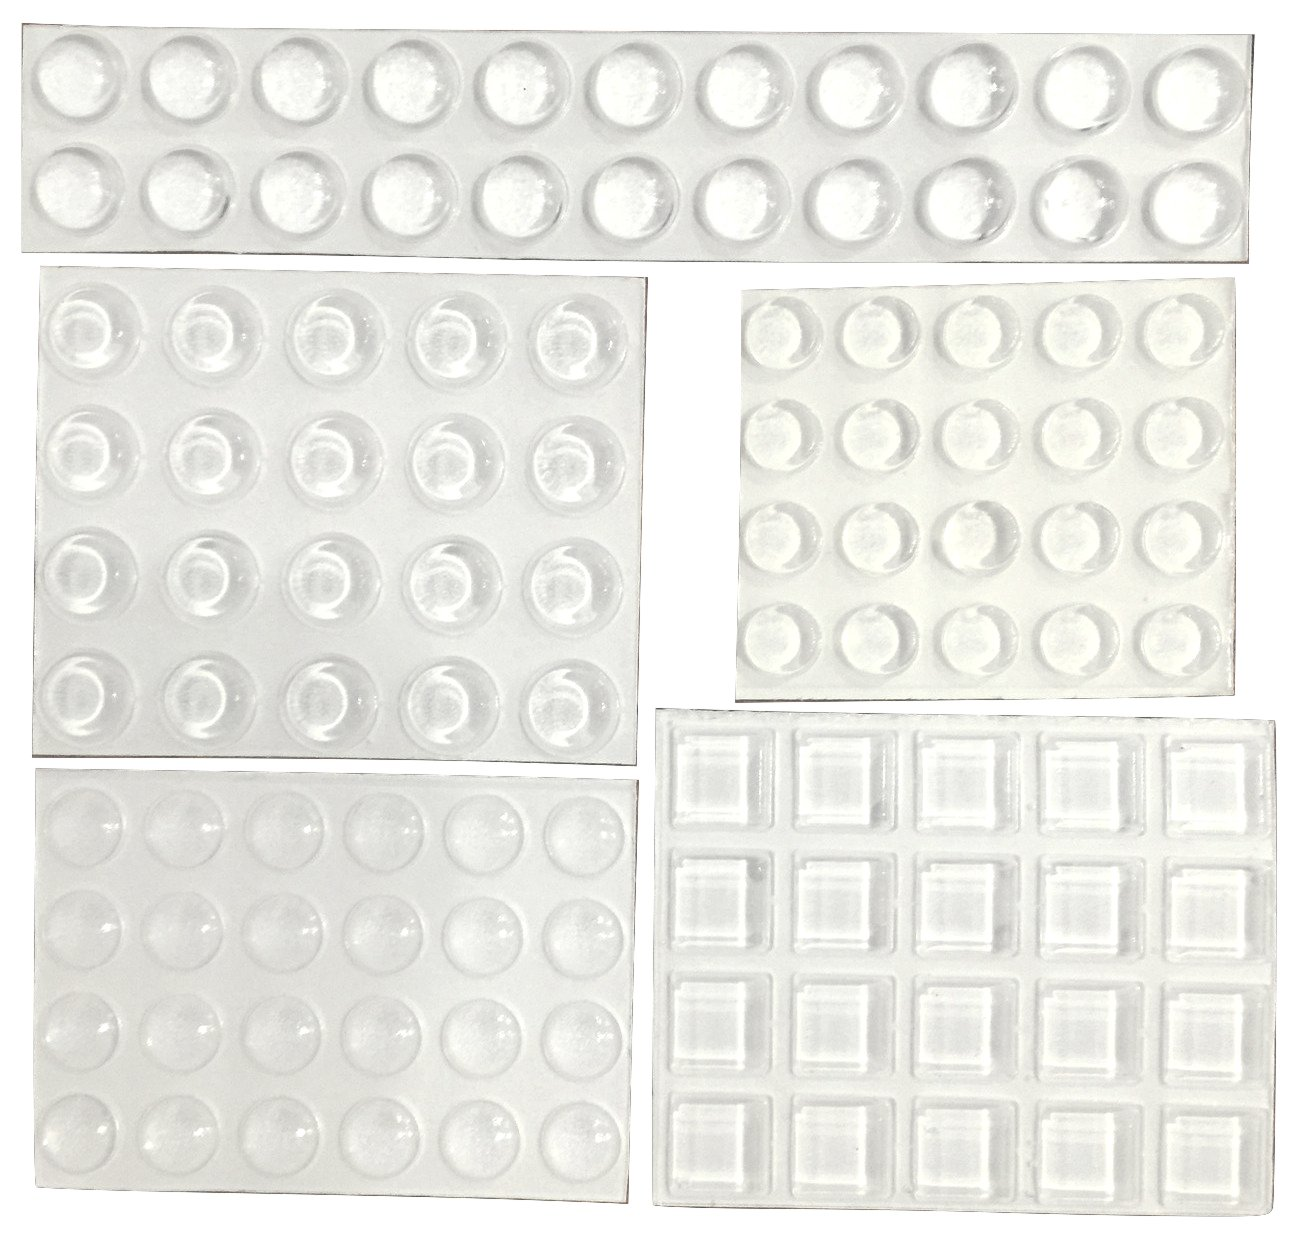 Clear Adhesive Bumper Pads 106-PC Combo Pack (Round, Spherical, Square) - Made in USA - Sound Dampening Transparent Rubber Feet for Cabinet Doors, Drawers, Glass Tops, Picture Frames, Cutting Boards